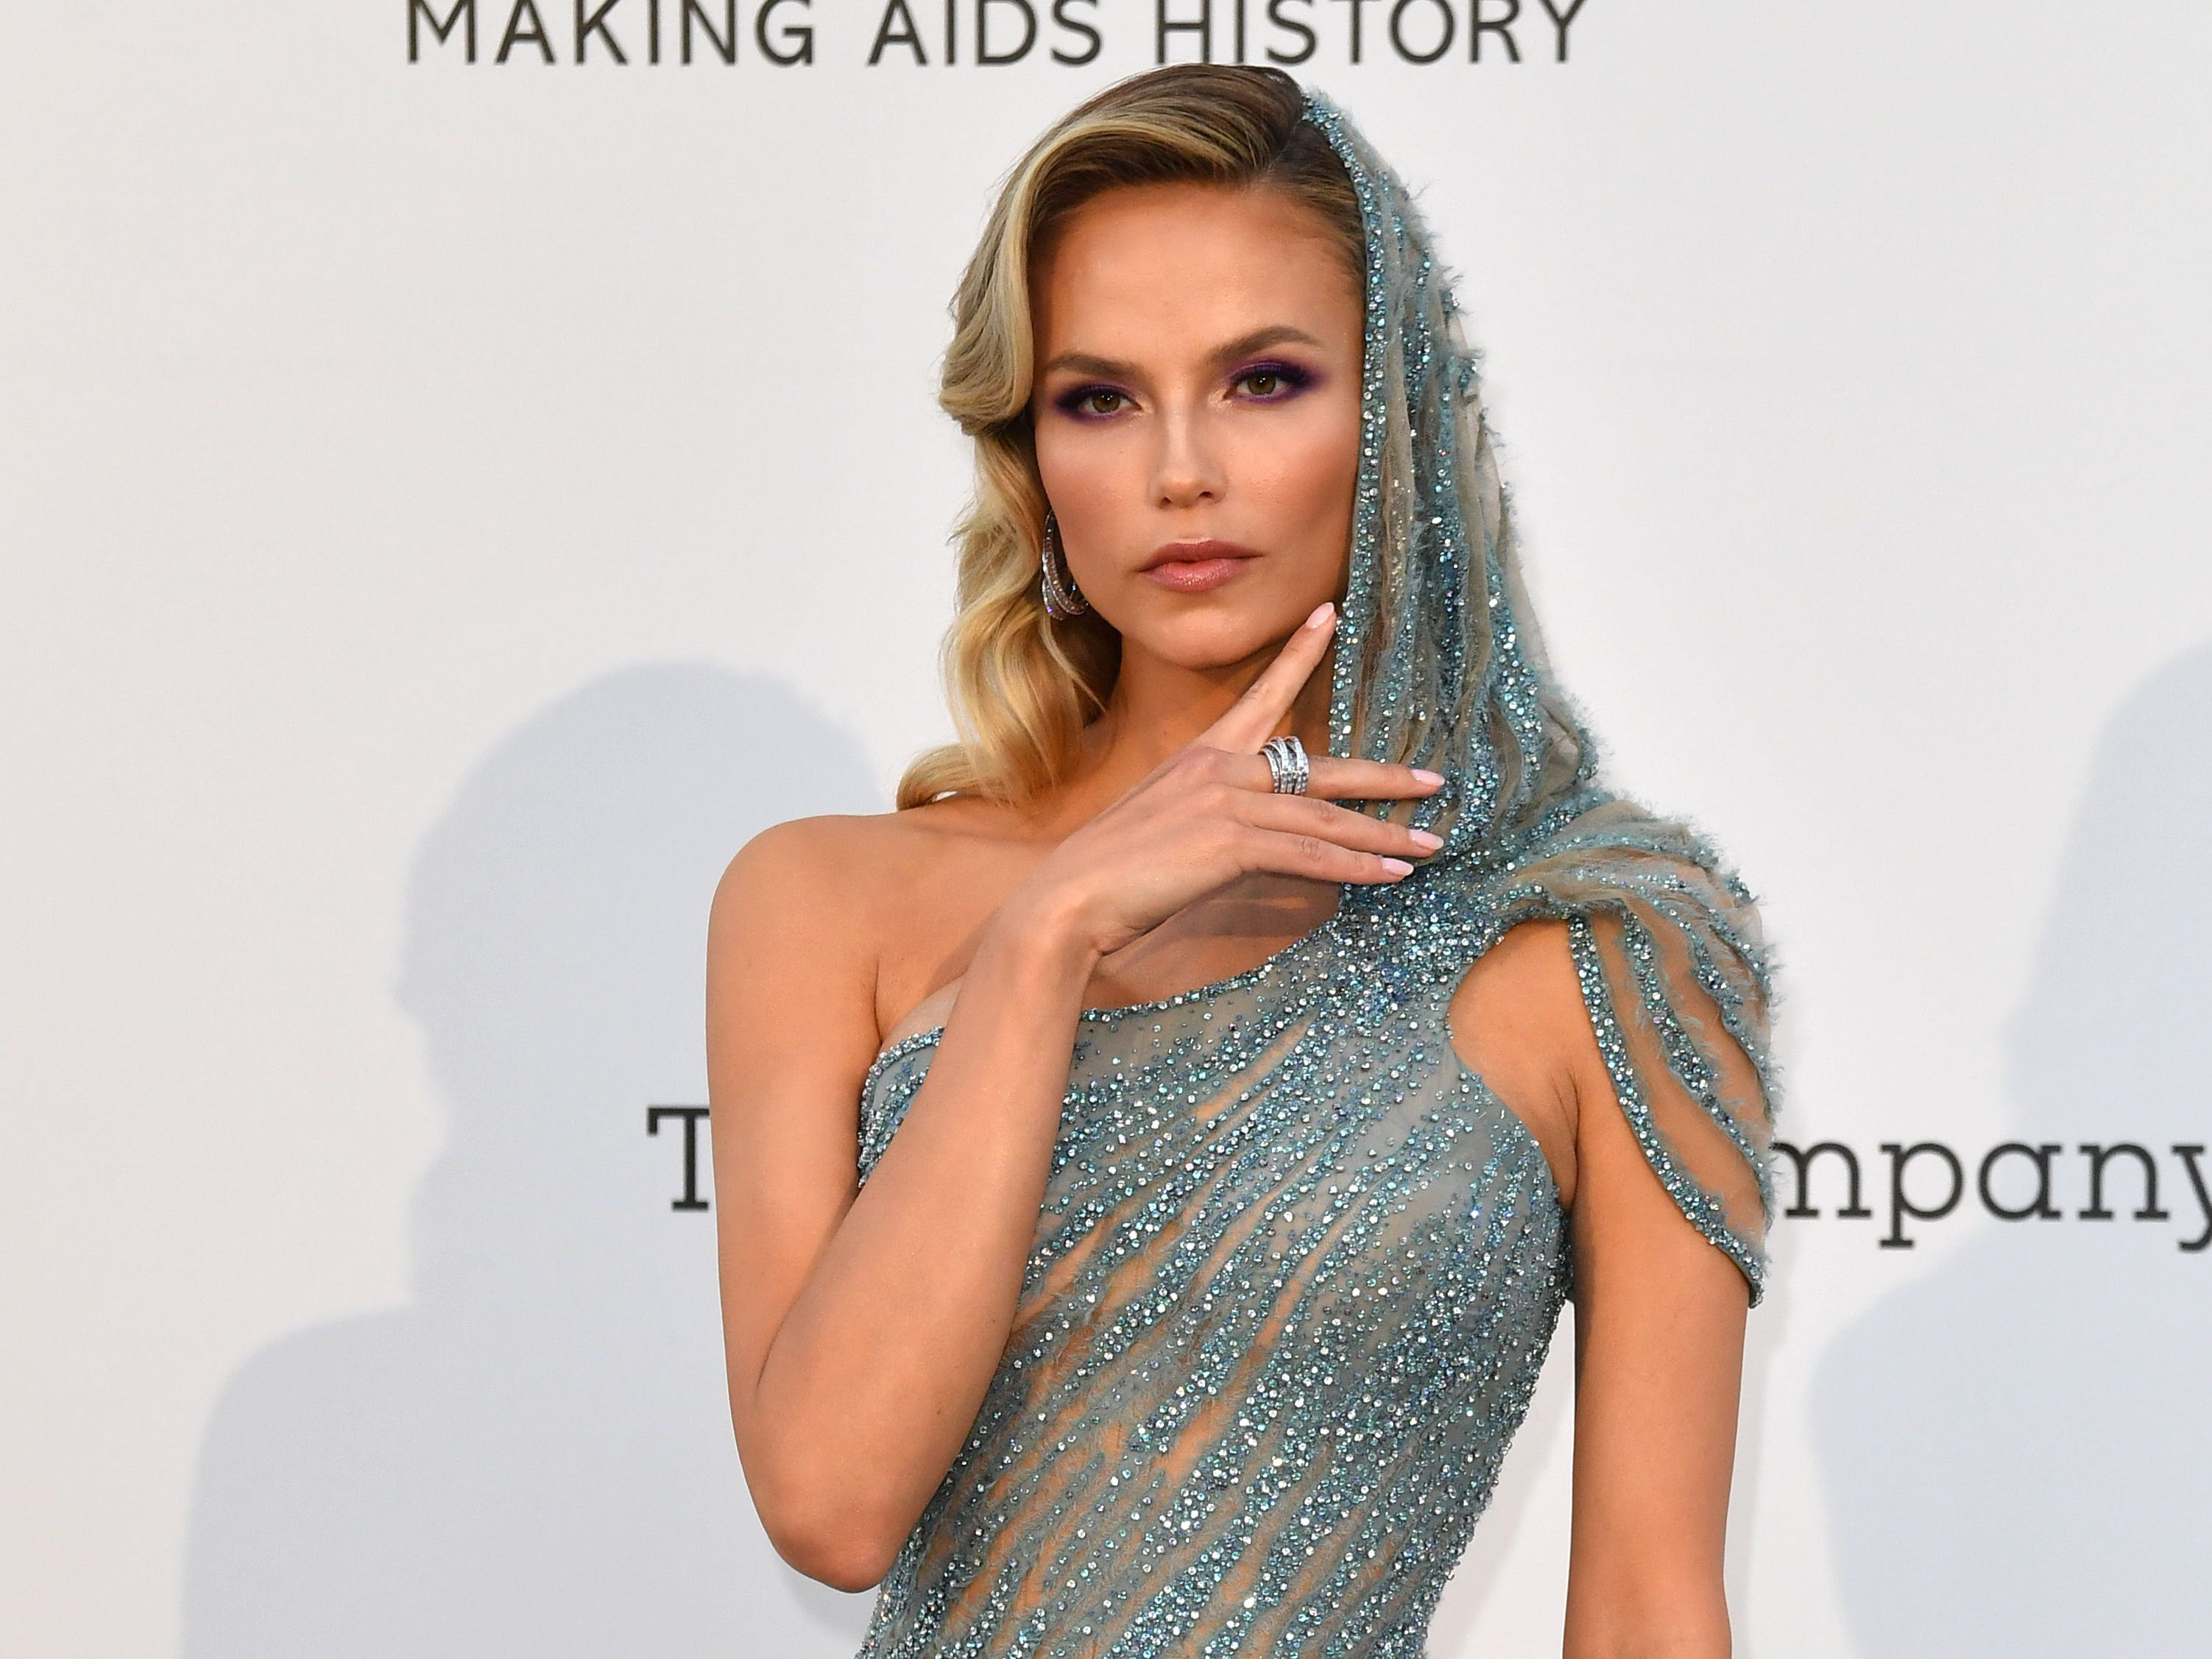 Russian model Natasha Poly poses as she arrives on May 23, 2019 for the amfAR 26th Annual Cinema Against AIDS gala at the Hotel du Cap-Eden-Roc in Cap d'Antibes, southern France, on the sidelines of the 72nd Cannes Film Festival. (Photo by Alberto PIZZOLI / AFP)ALBERTO PIZZOLI/AFP/Getty Images ORIG FILE ID: AFP_1GU1UG